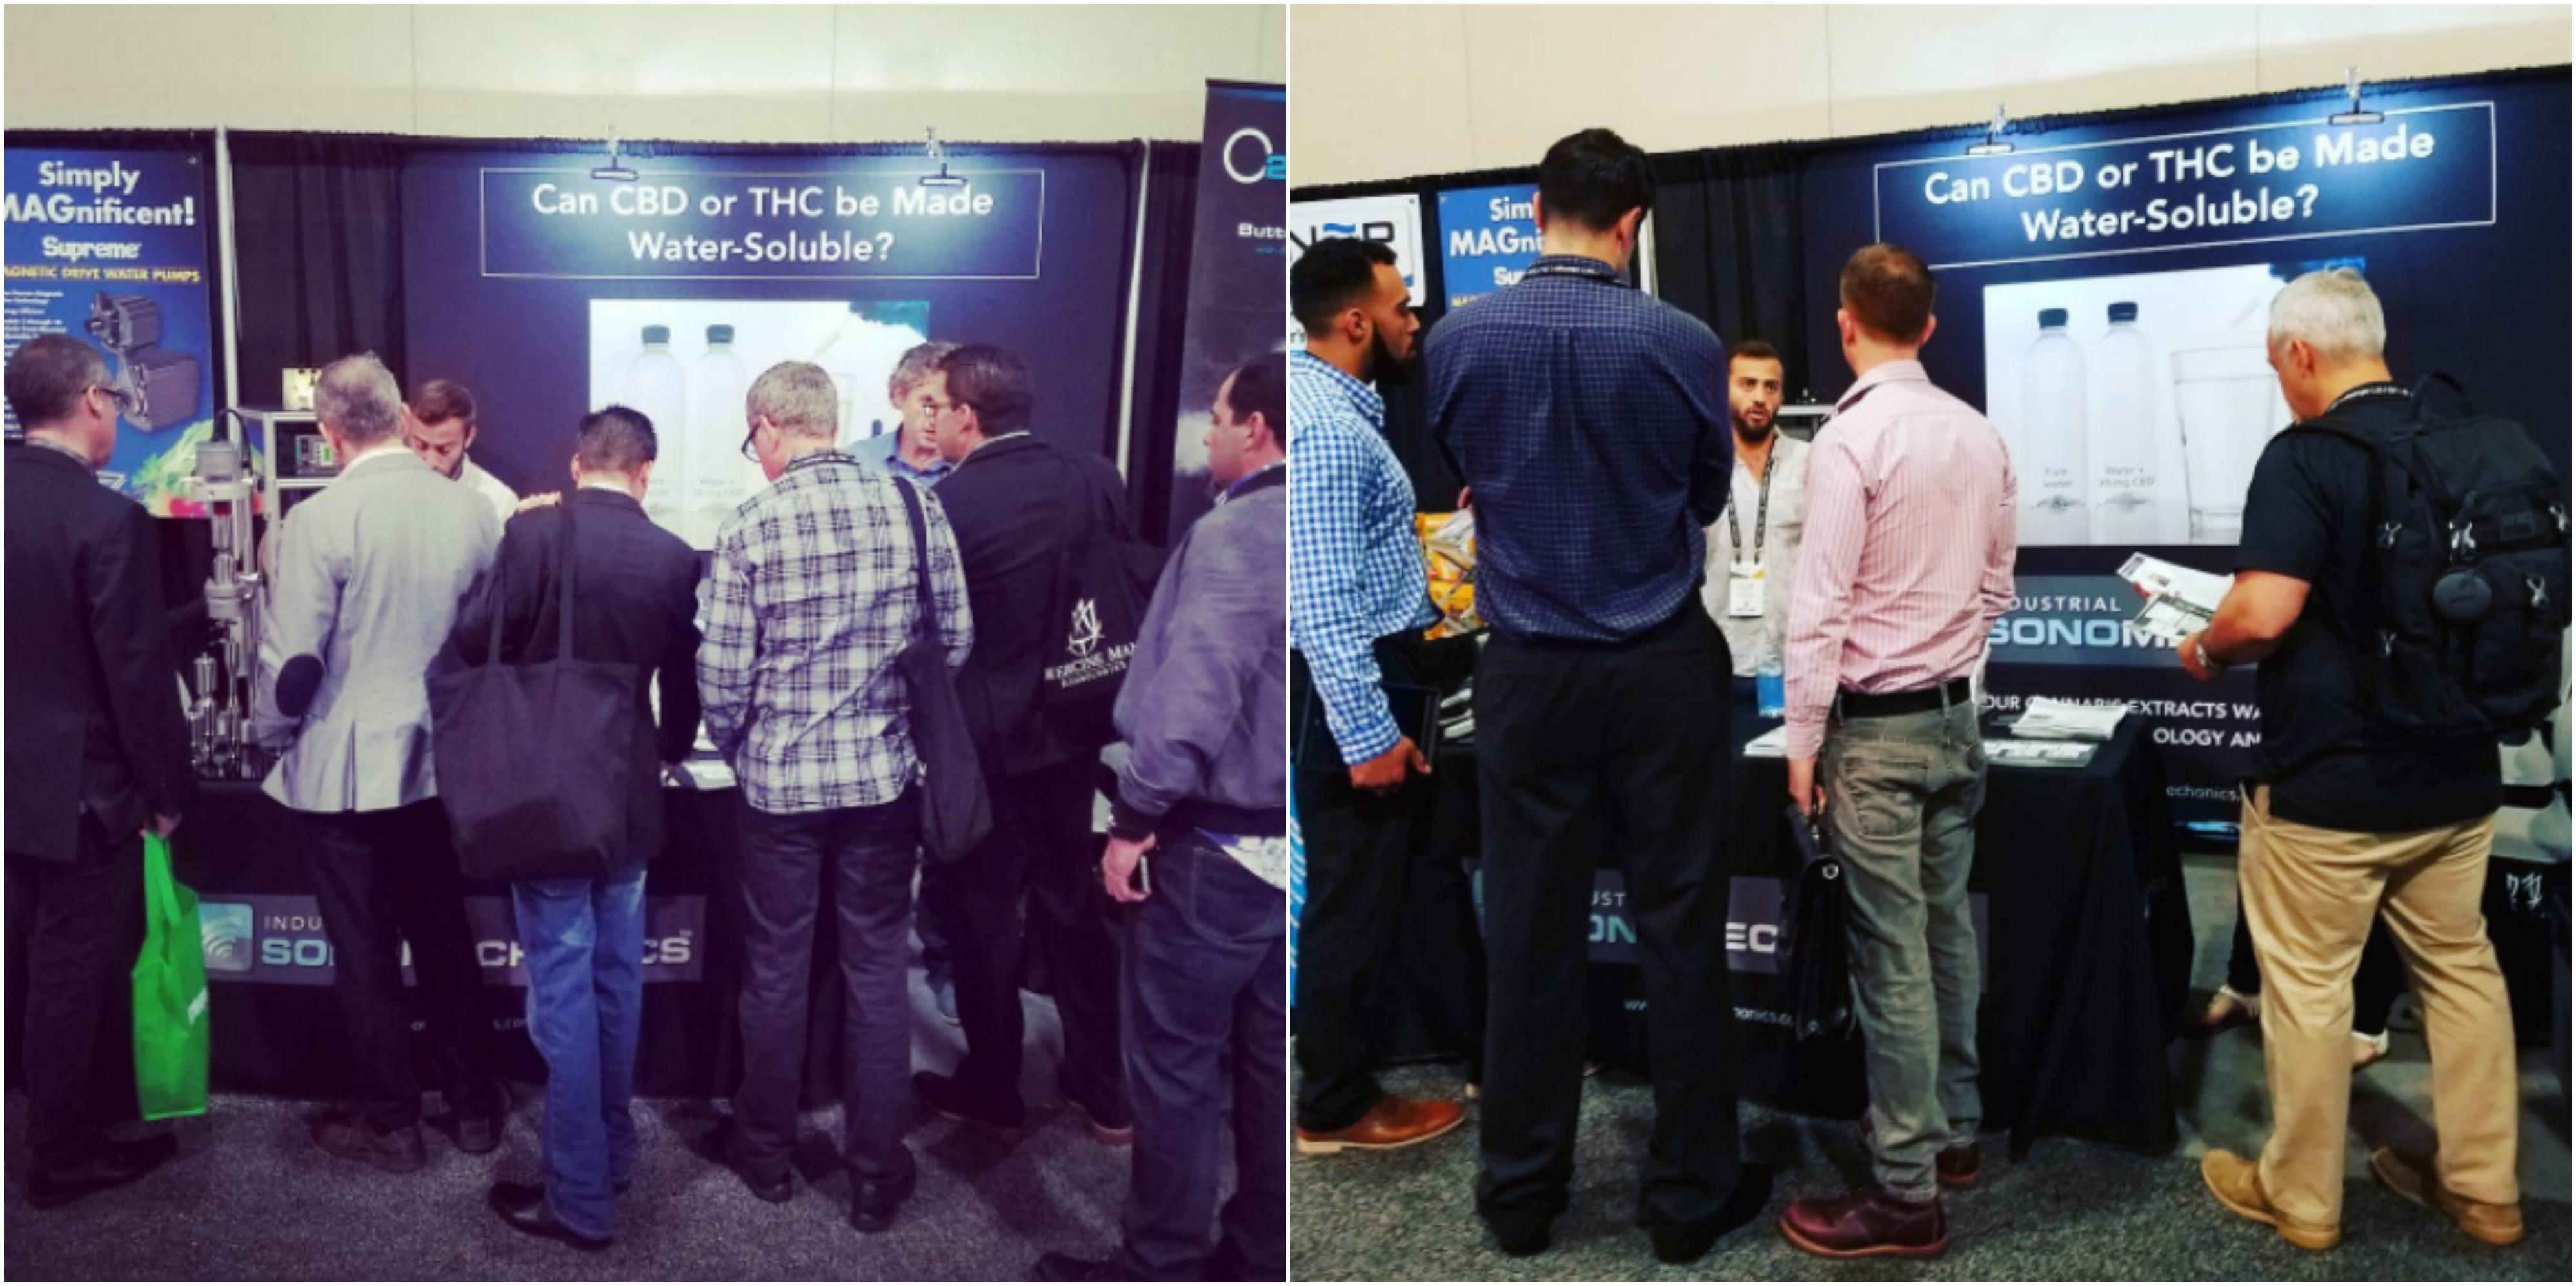 Industrial Sonomechanics' booth at the 2017 MJBiz Conference and Expo